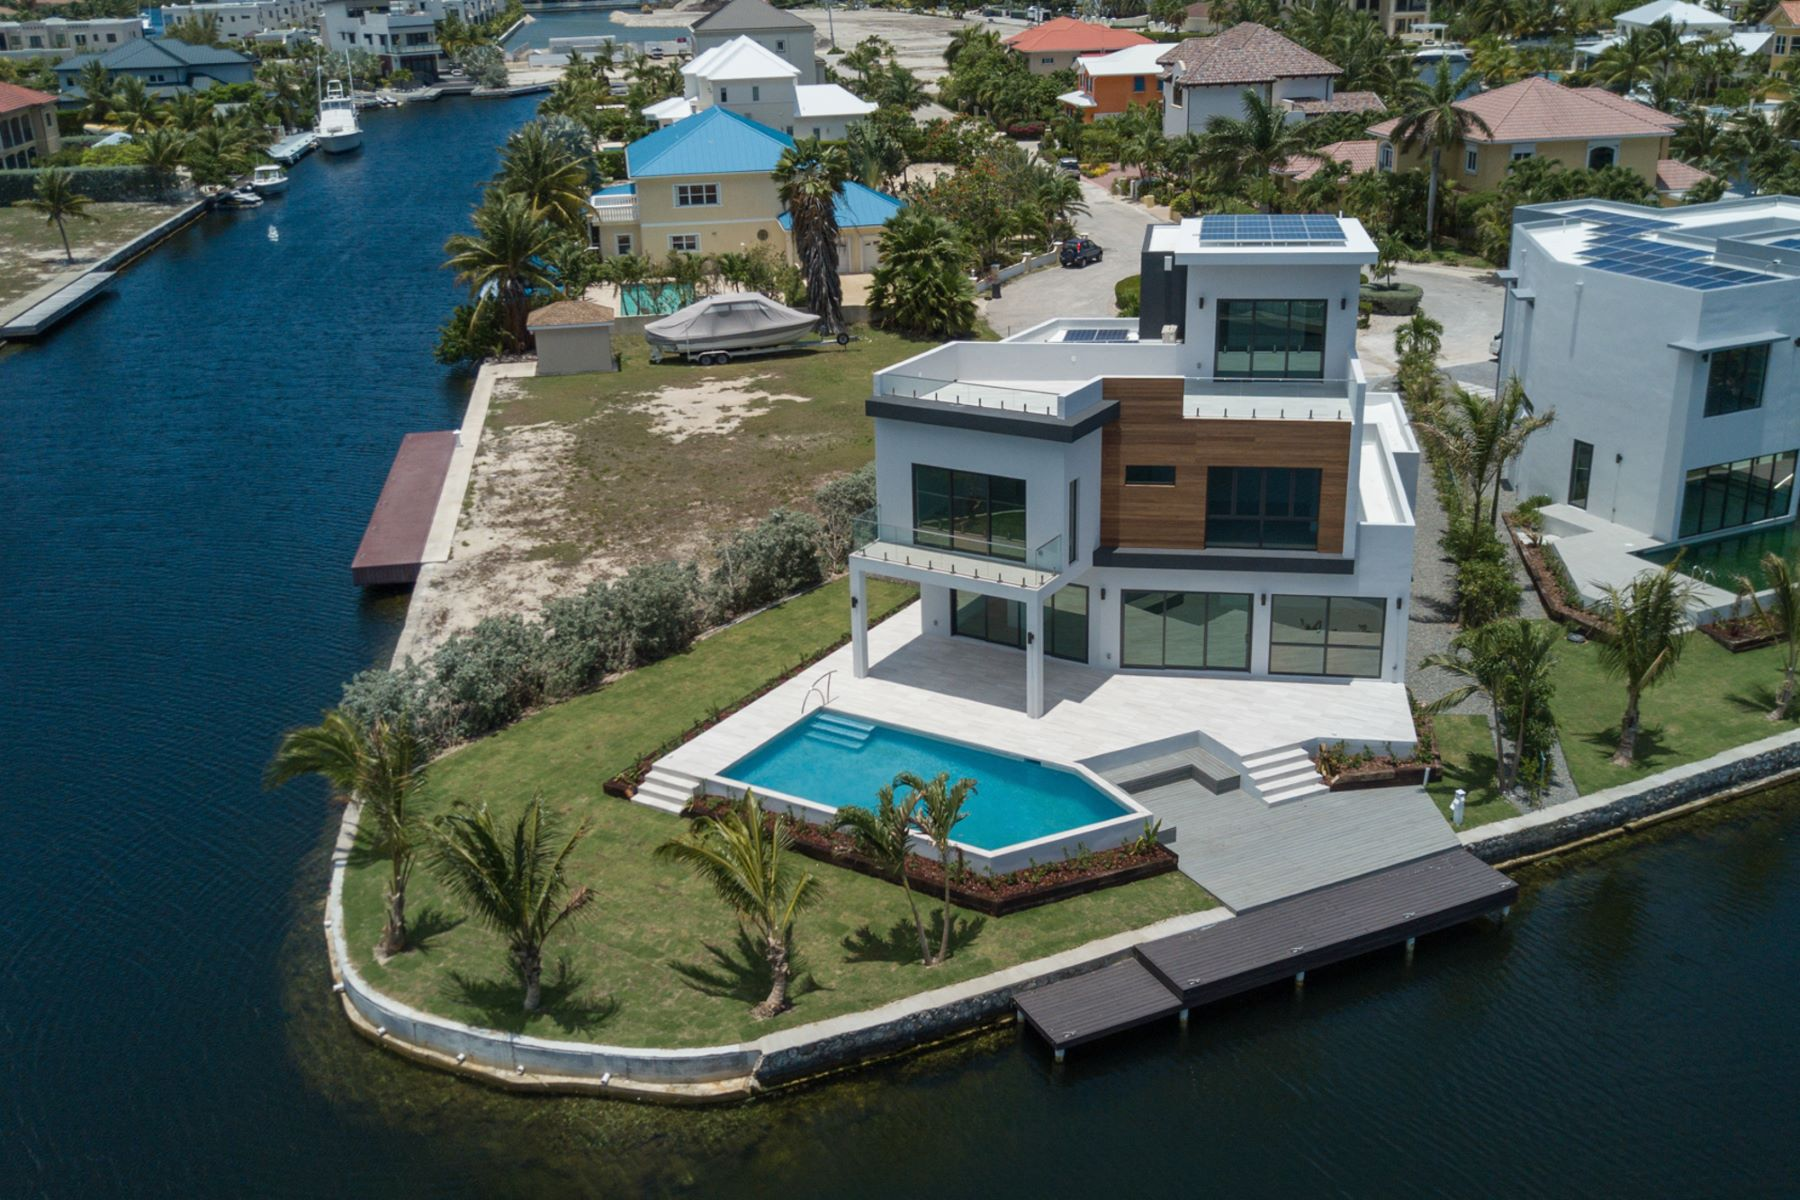 Single Family Home for Sale at HQ Contemporary Crystal Harbour Home Crystal Harbour, Cayman Islands